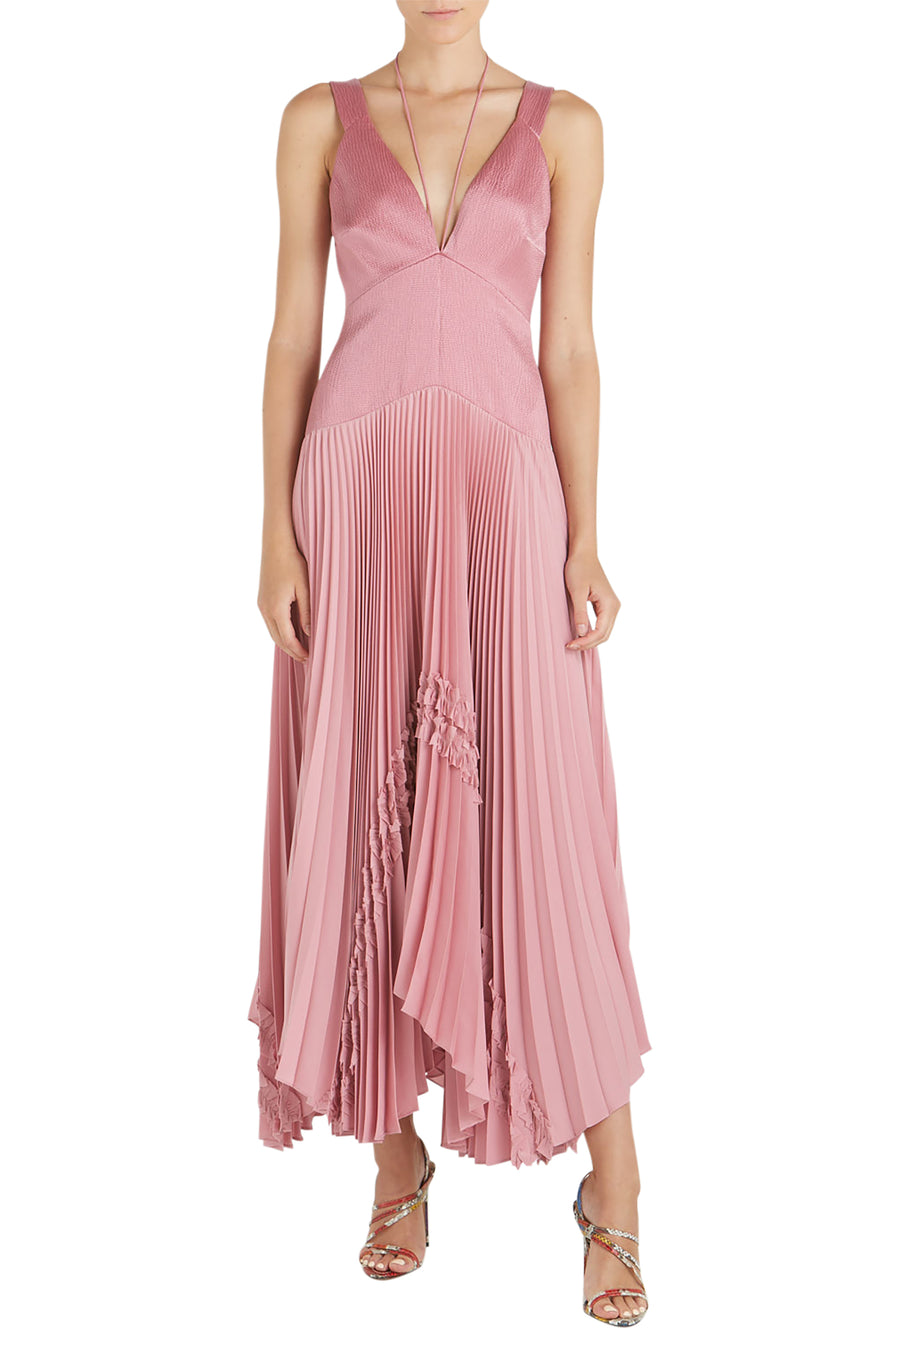 Alexis Bellona Pleated Maxi Dress in Violet from The New Trend